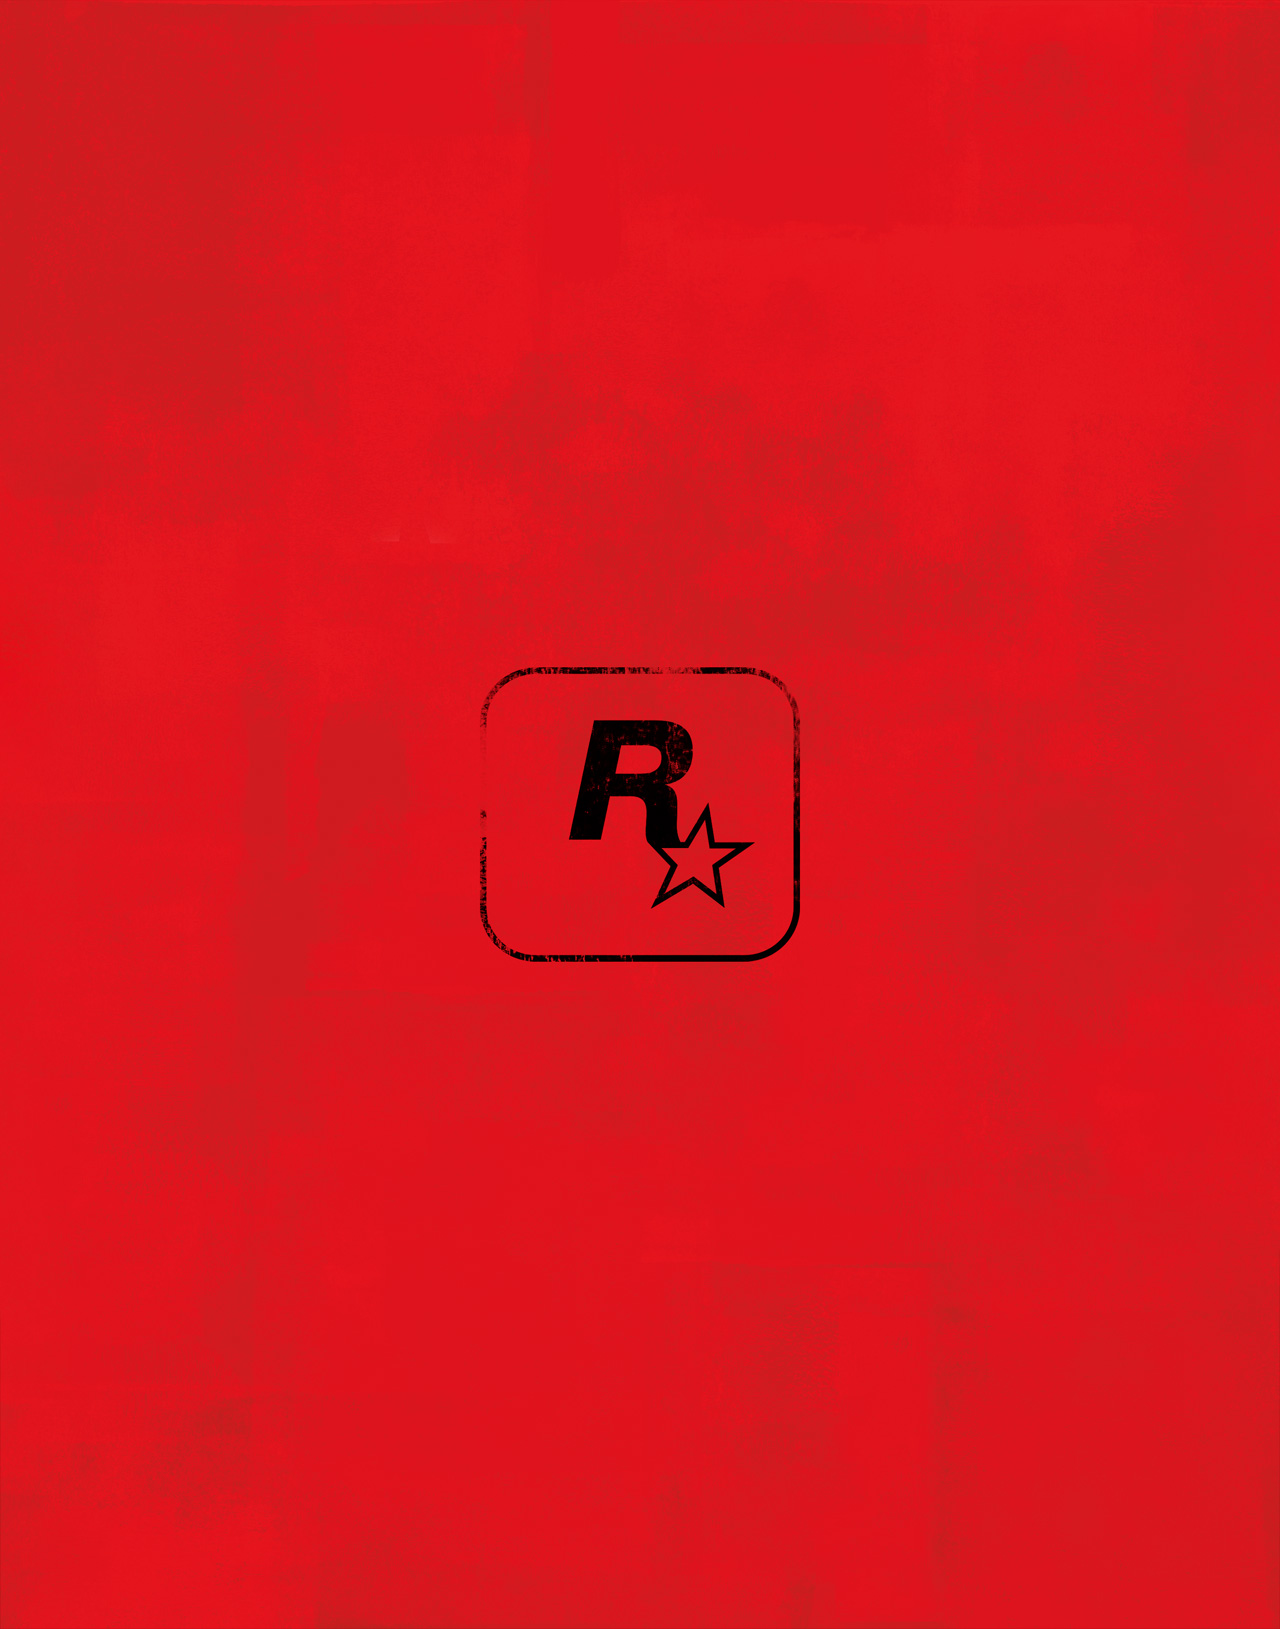 Rockstar teases Red Dead reveal